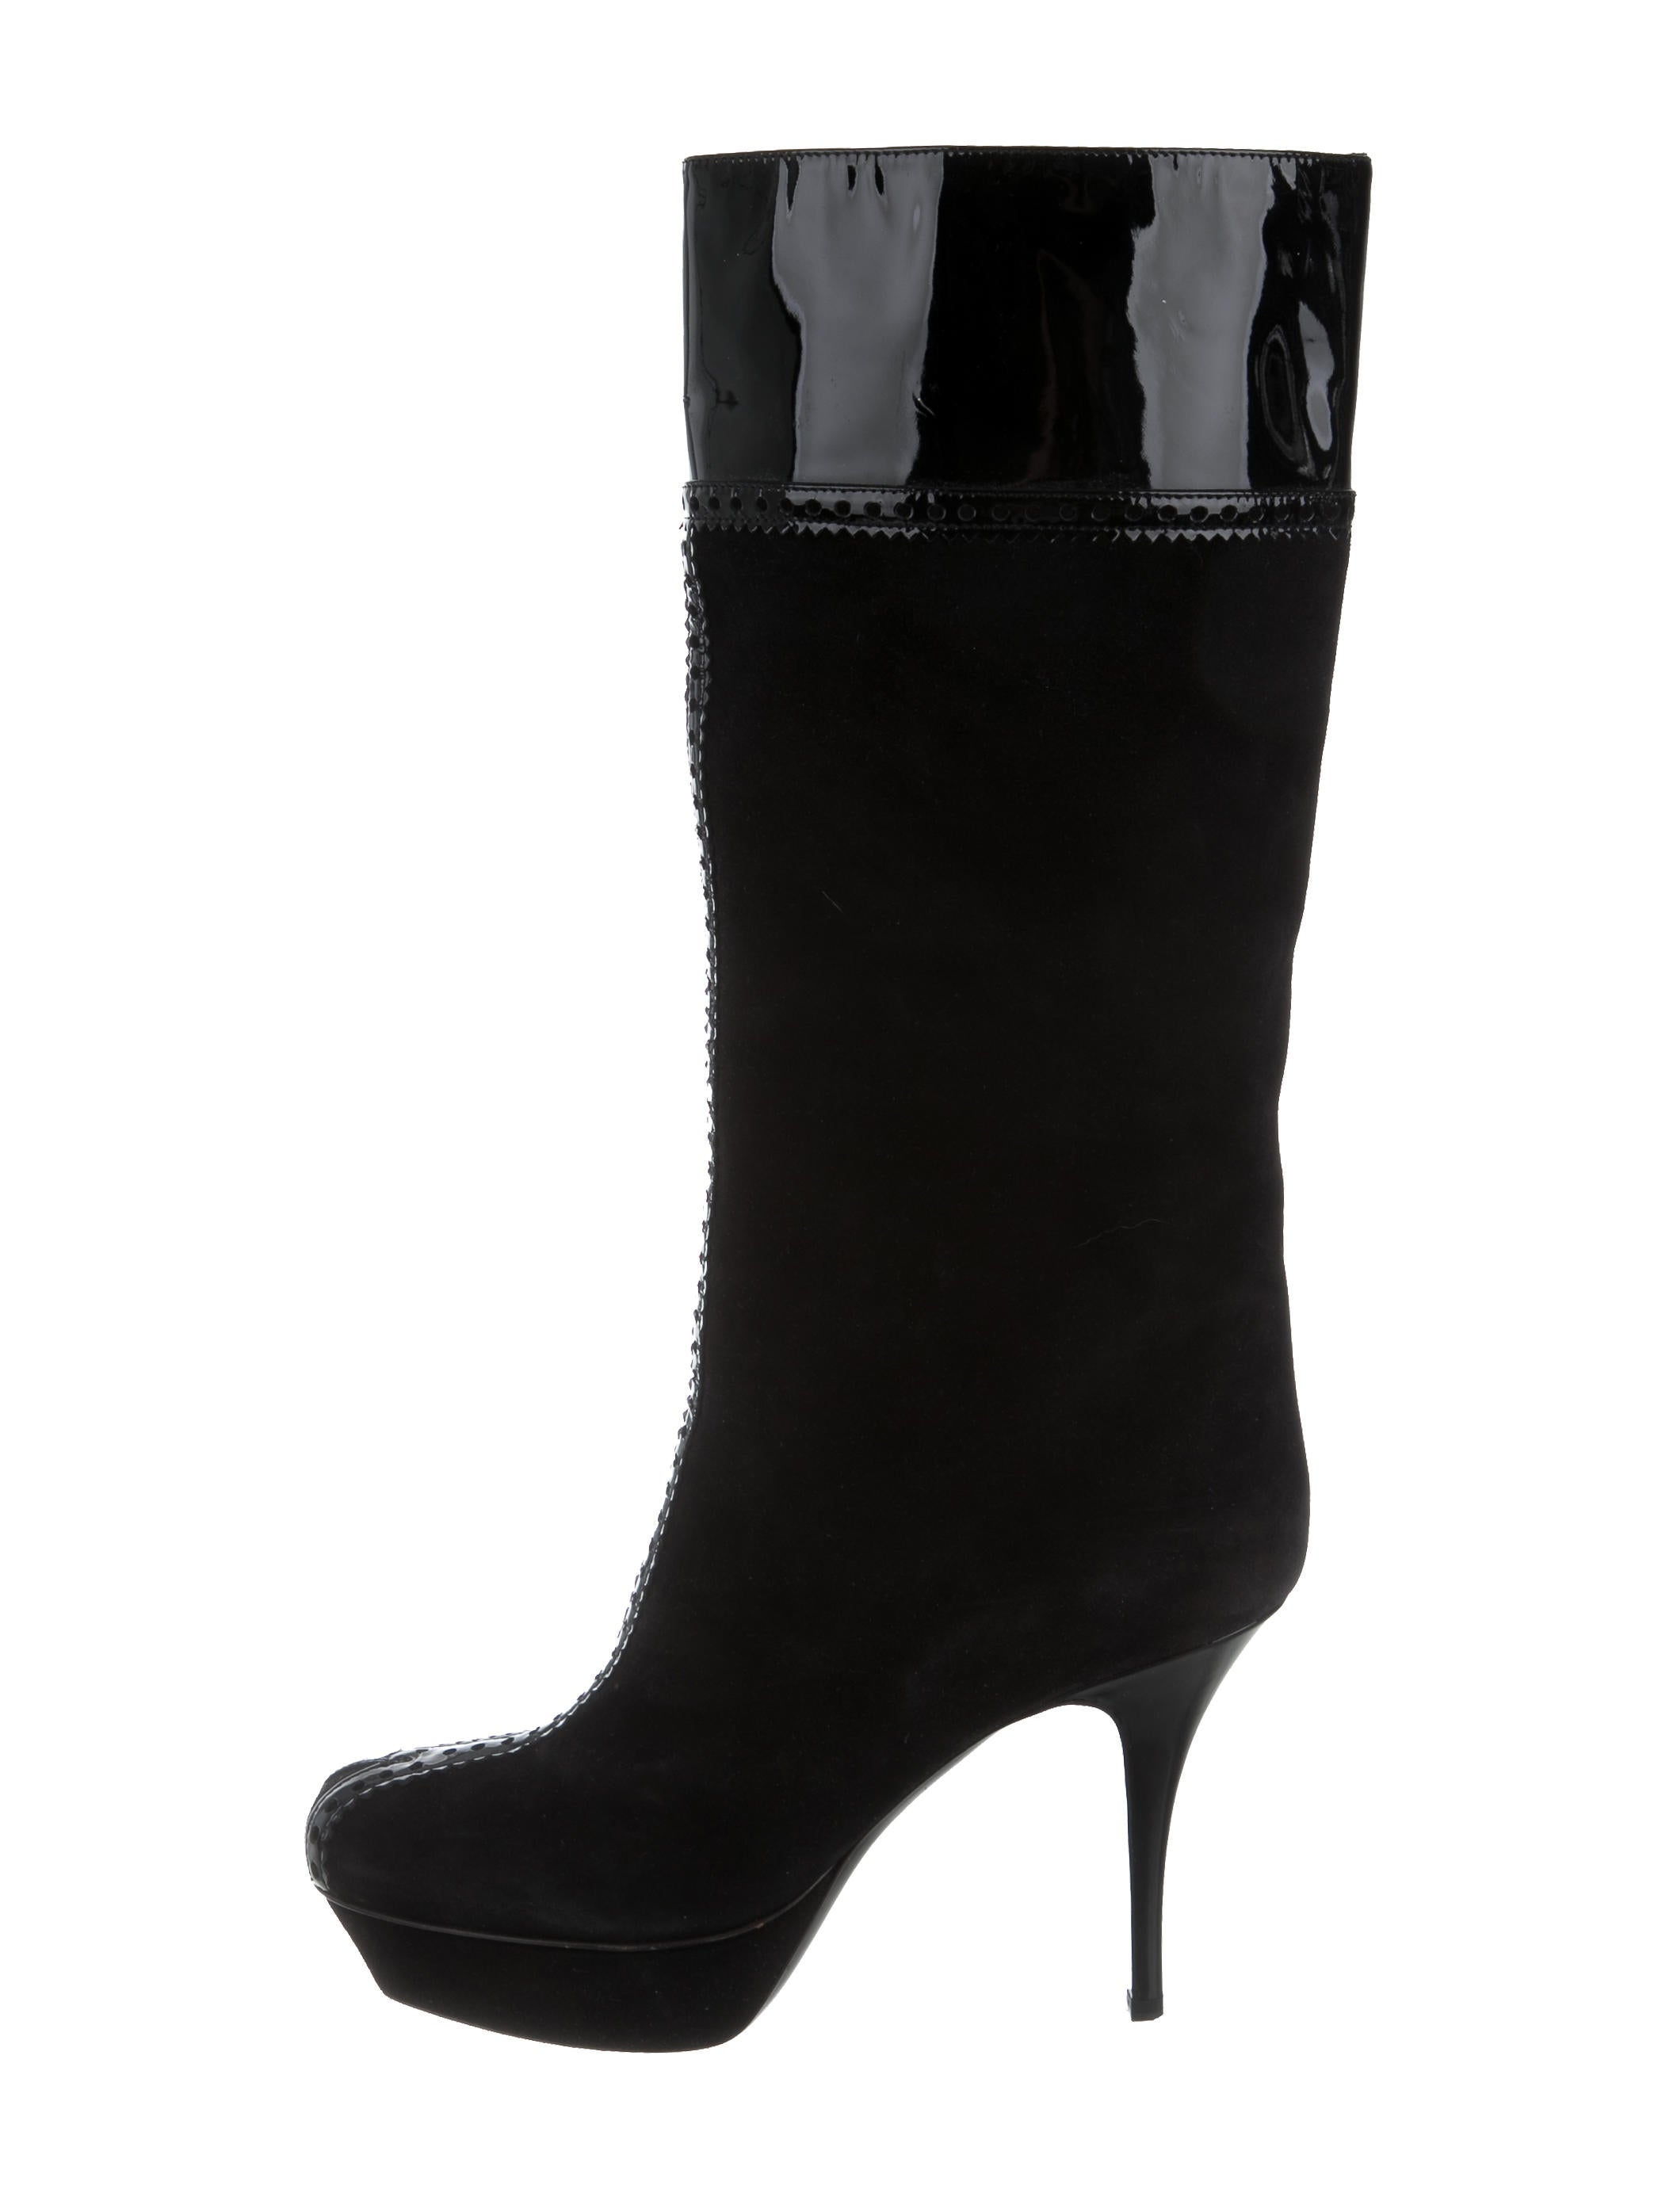 yves laurent suede platform boots shoes yve57585